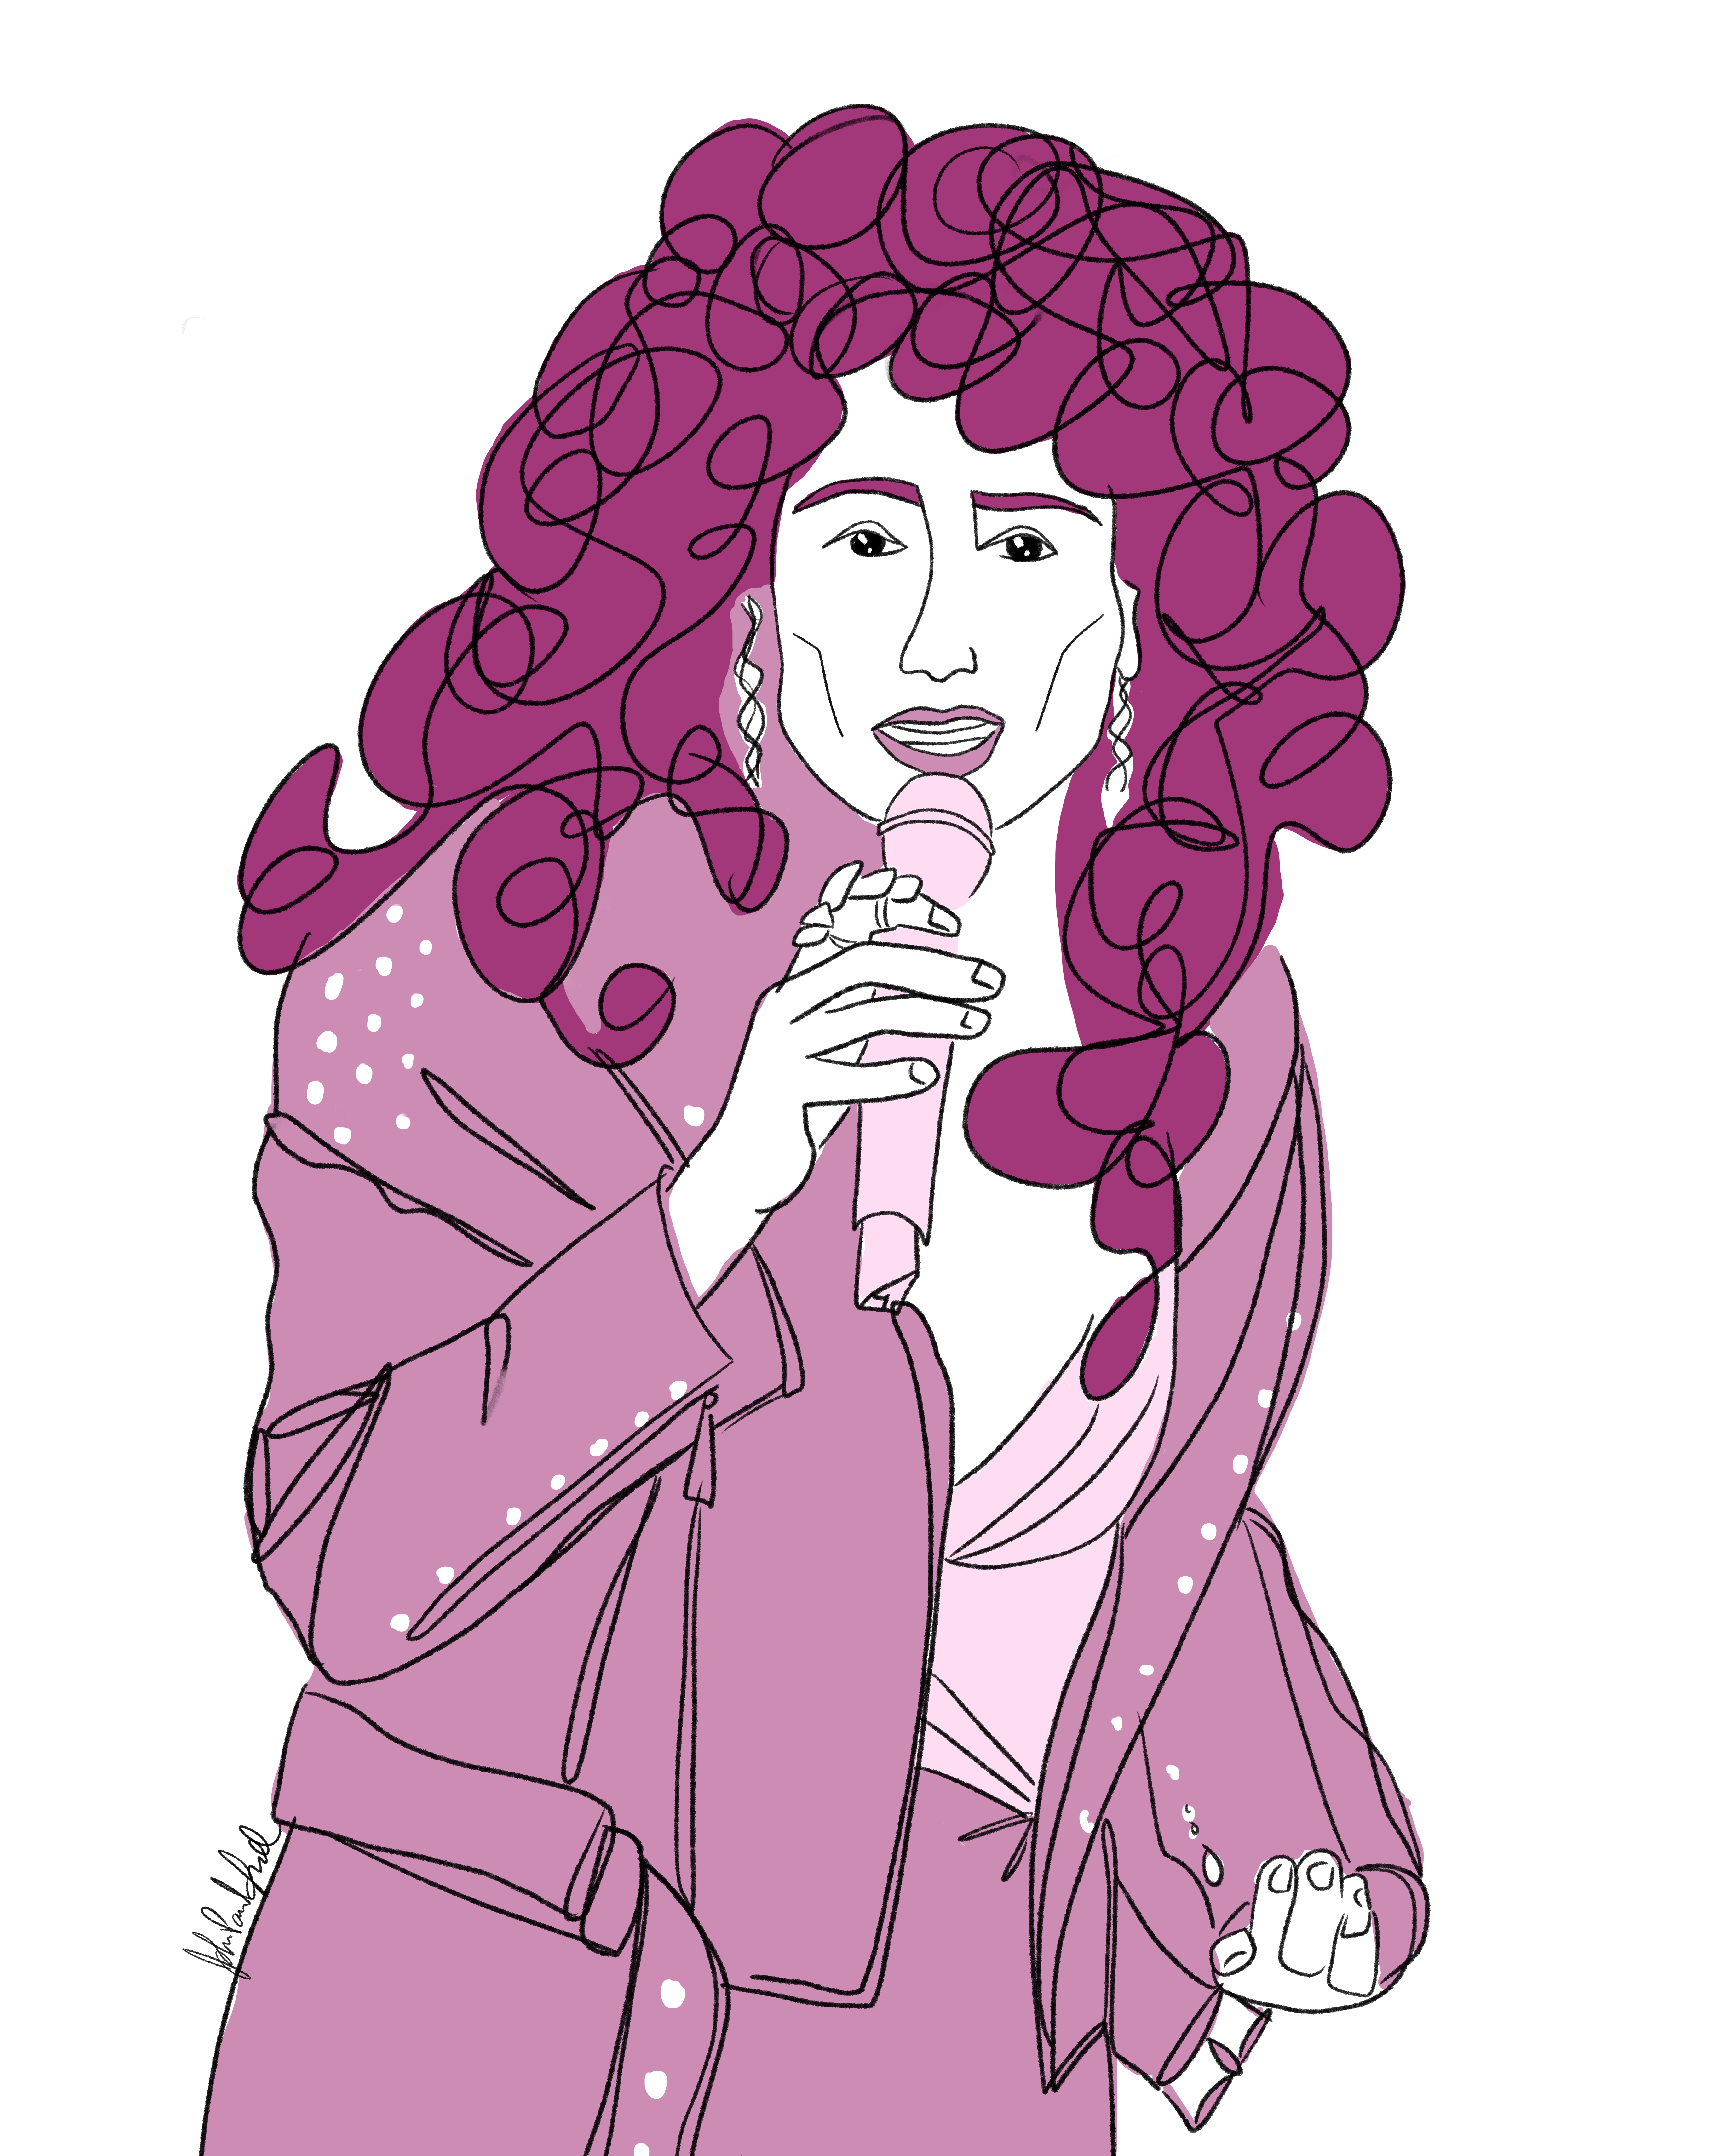 Stephanie J. Block in <i>The Cher Show</i>. Illustration by John Paul Snead.